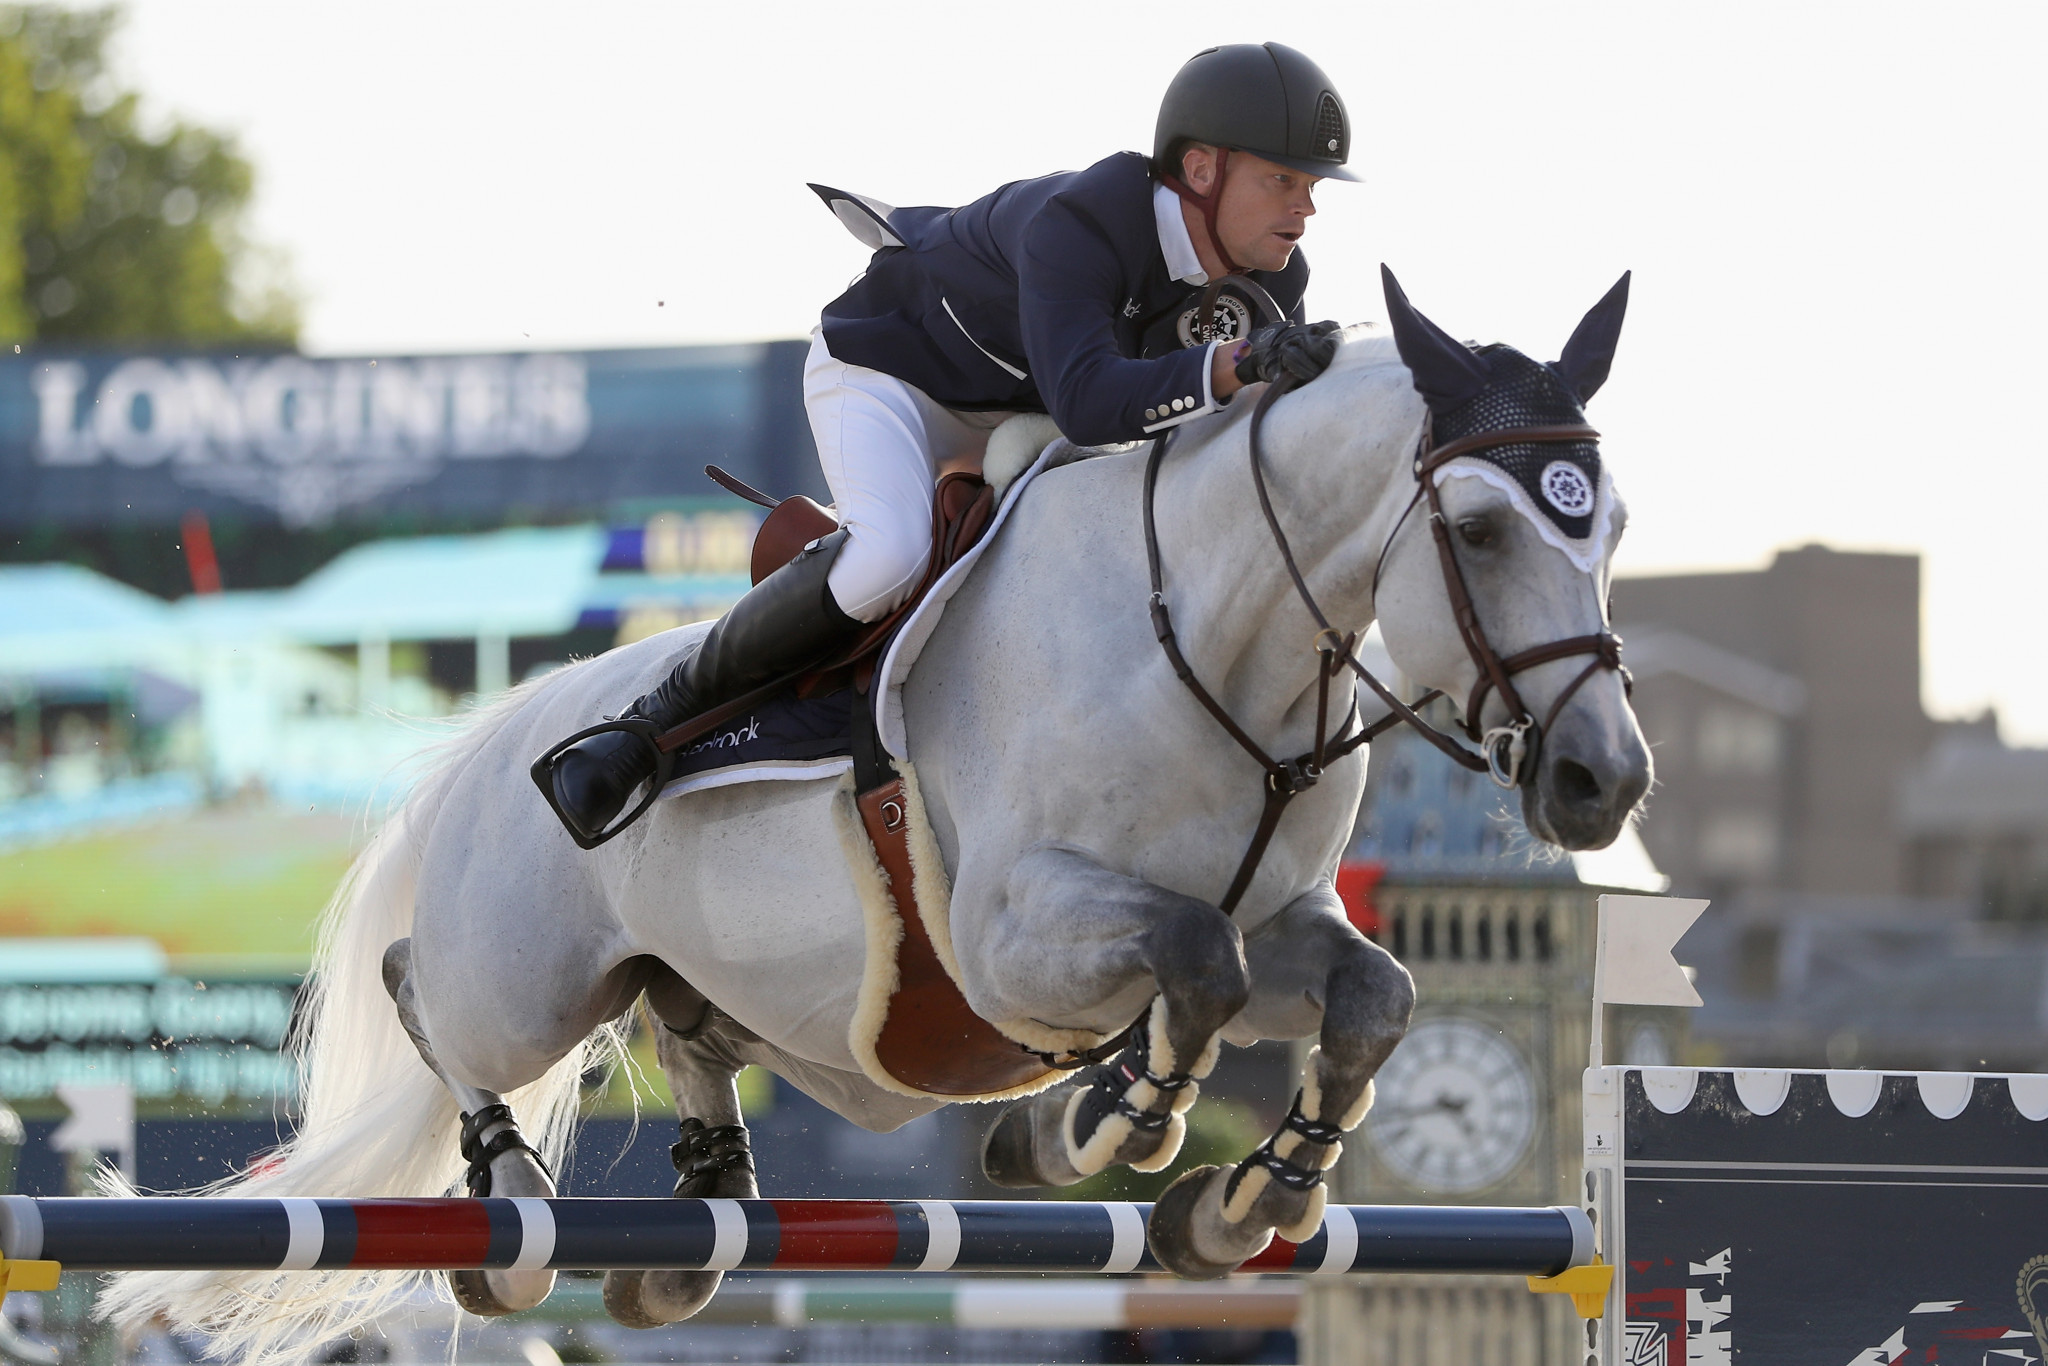 Second stop of Longines Global Champions Tour to begin in Mexico City